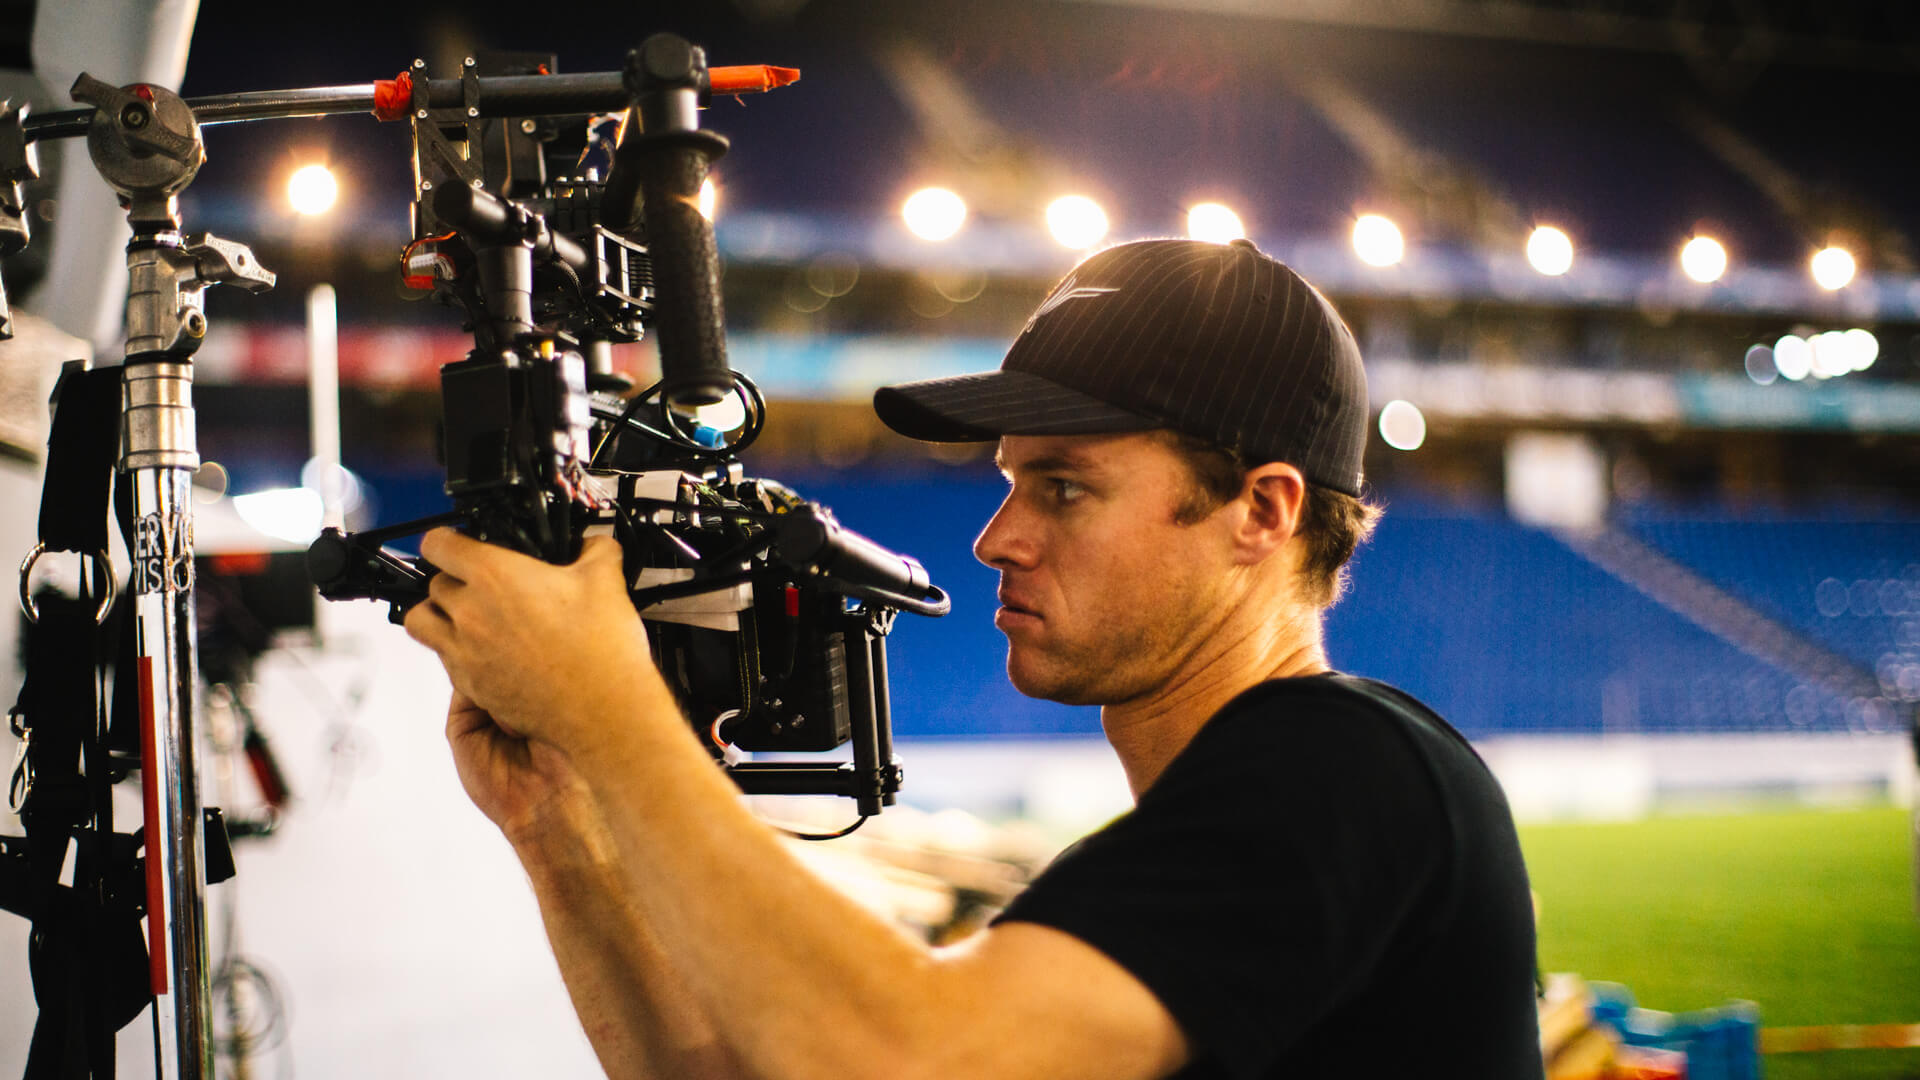 MoVI Operator Sam Nuttmann - Barcelona, Spain - DirecTV - early MoVI M10 prototype